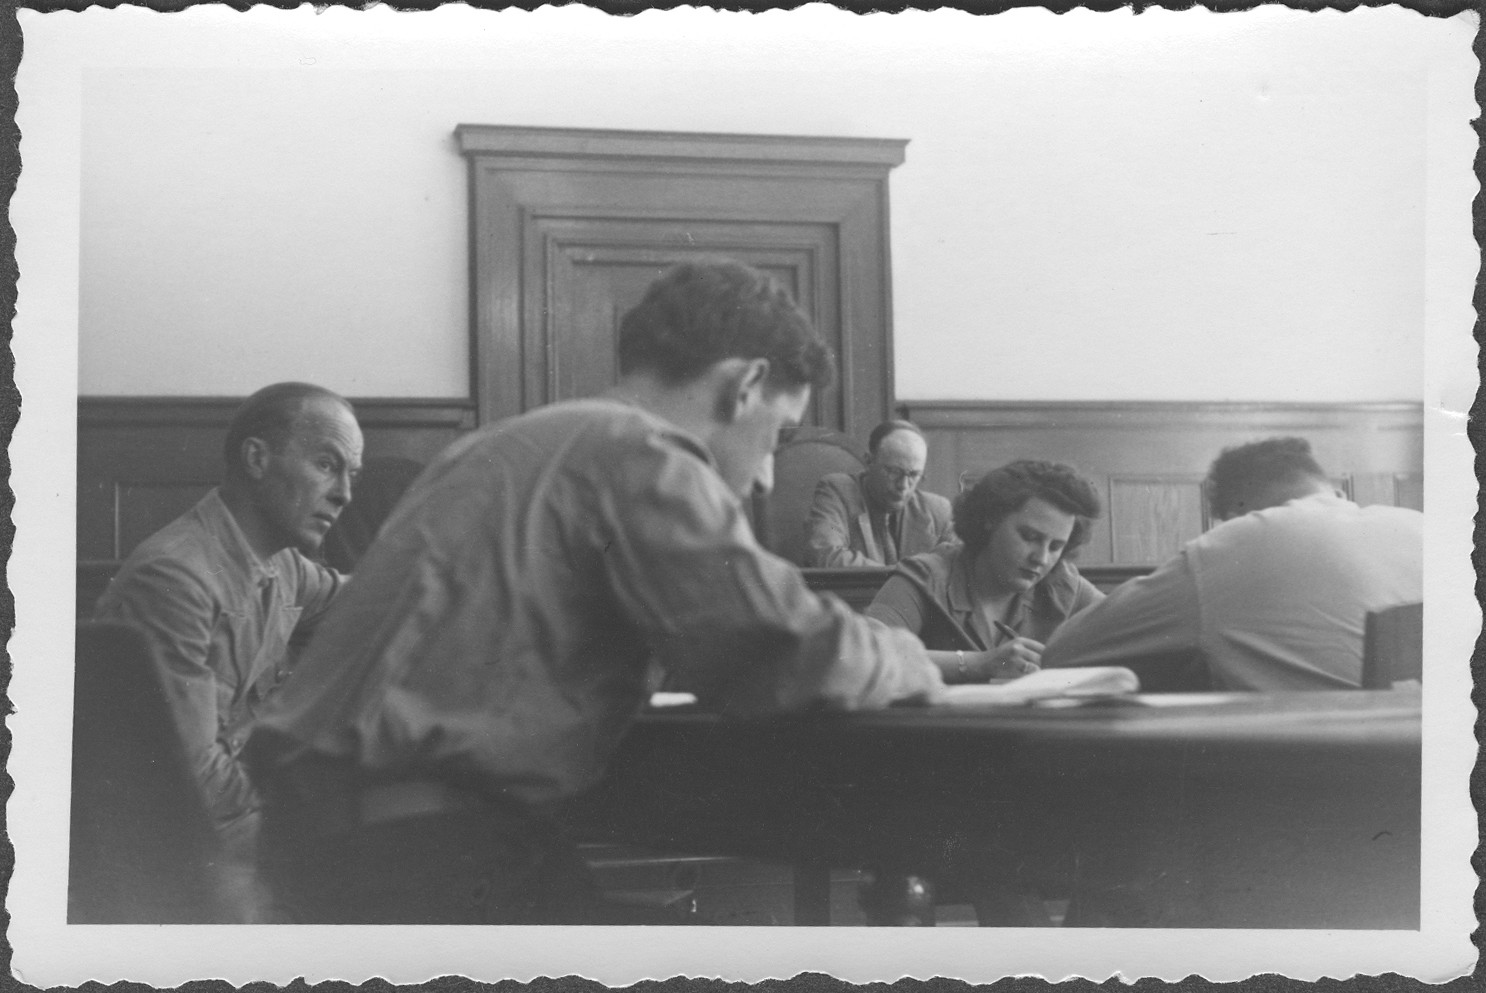 Interrogation of General Roettiger before Commissioner Rasumov at the IMT Nuremberg commission hearings investigating indicted Nazi organizations.